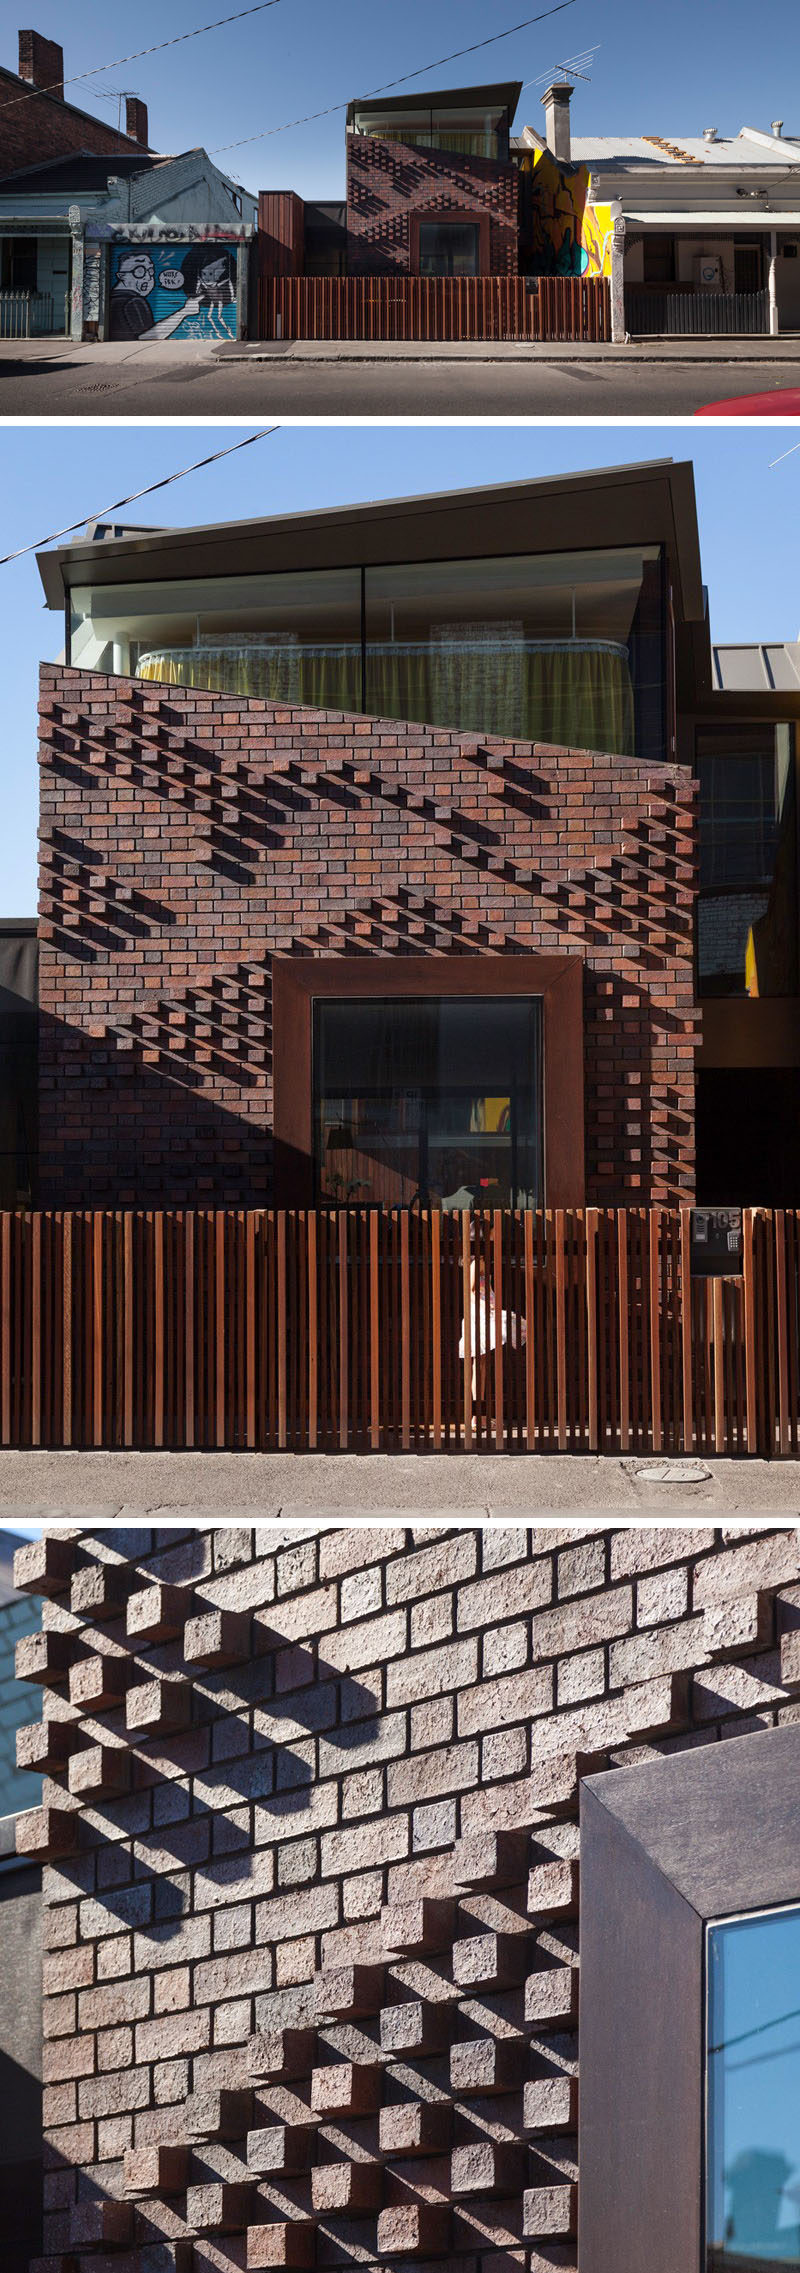 A patterned brick facade casts different shadows throughout the day.